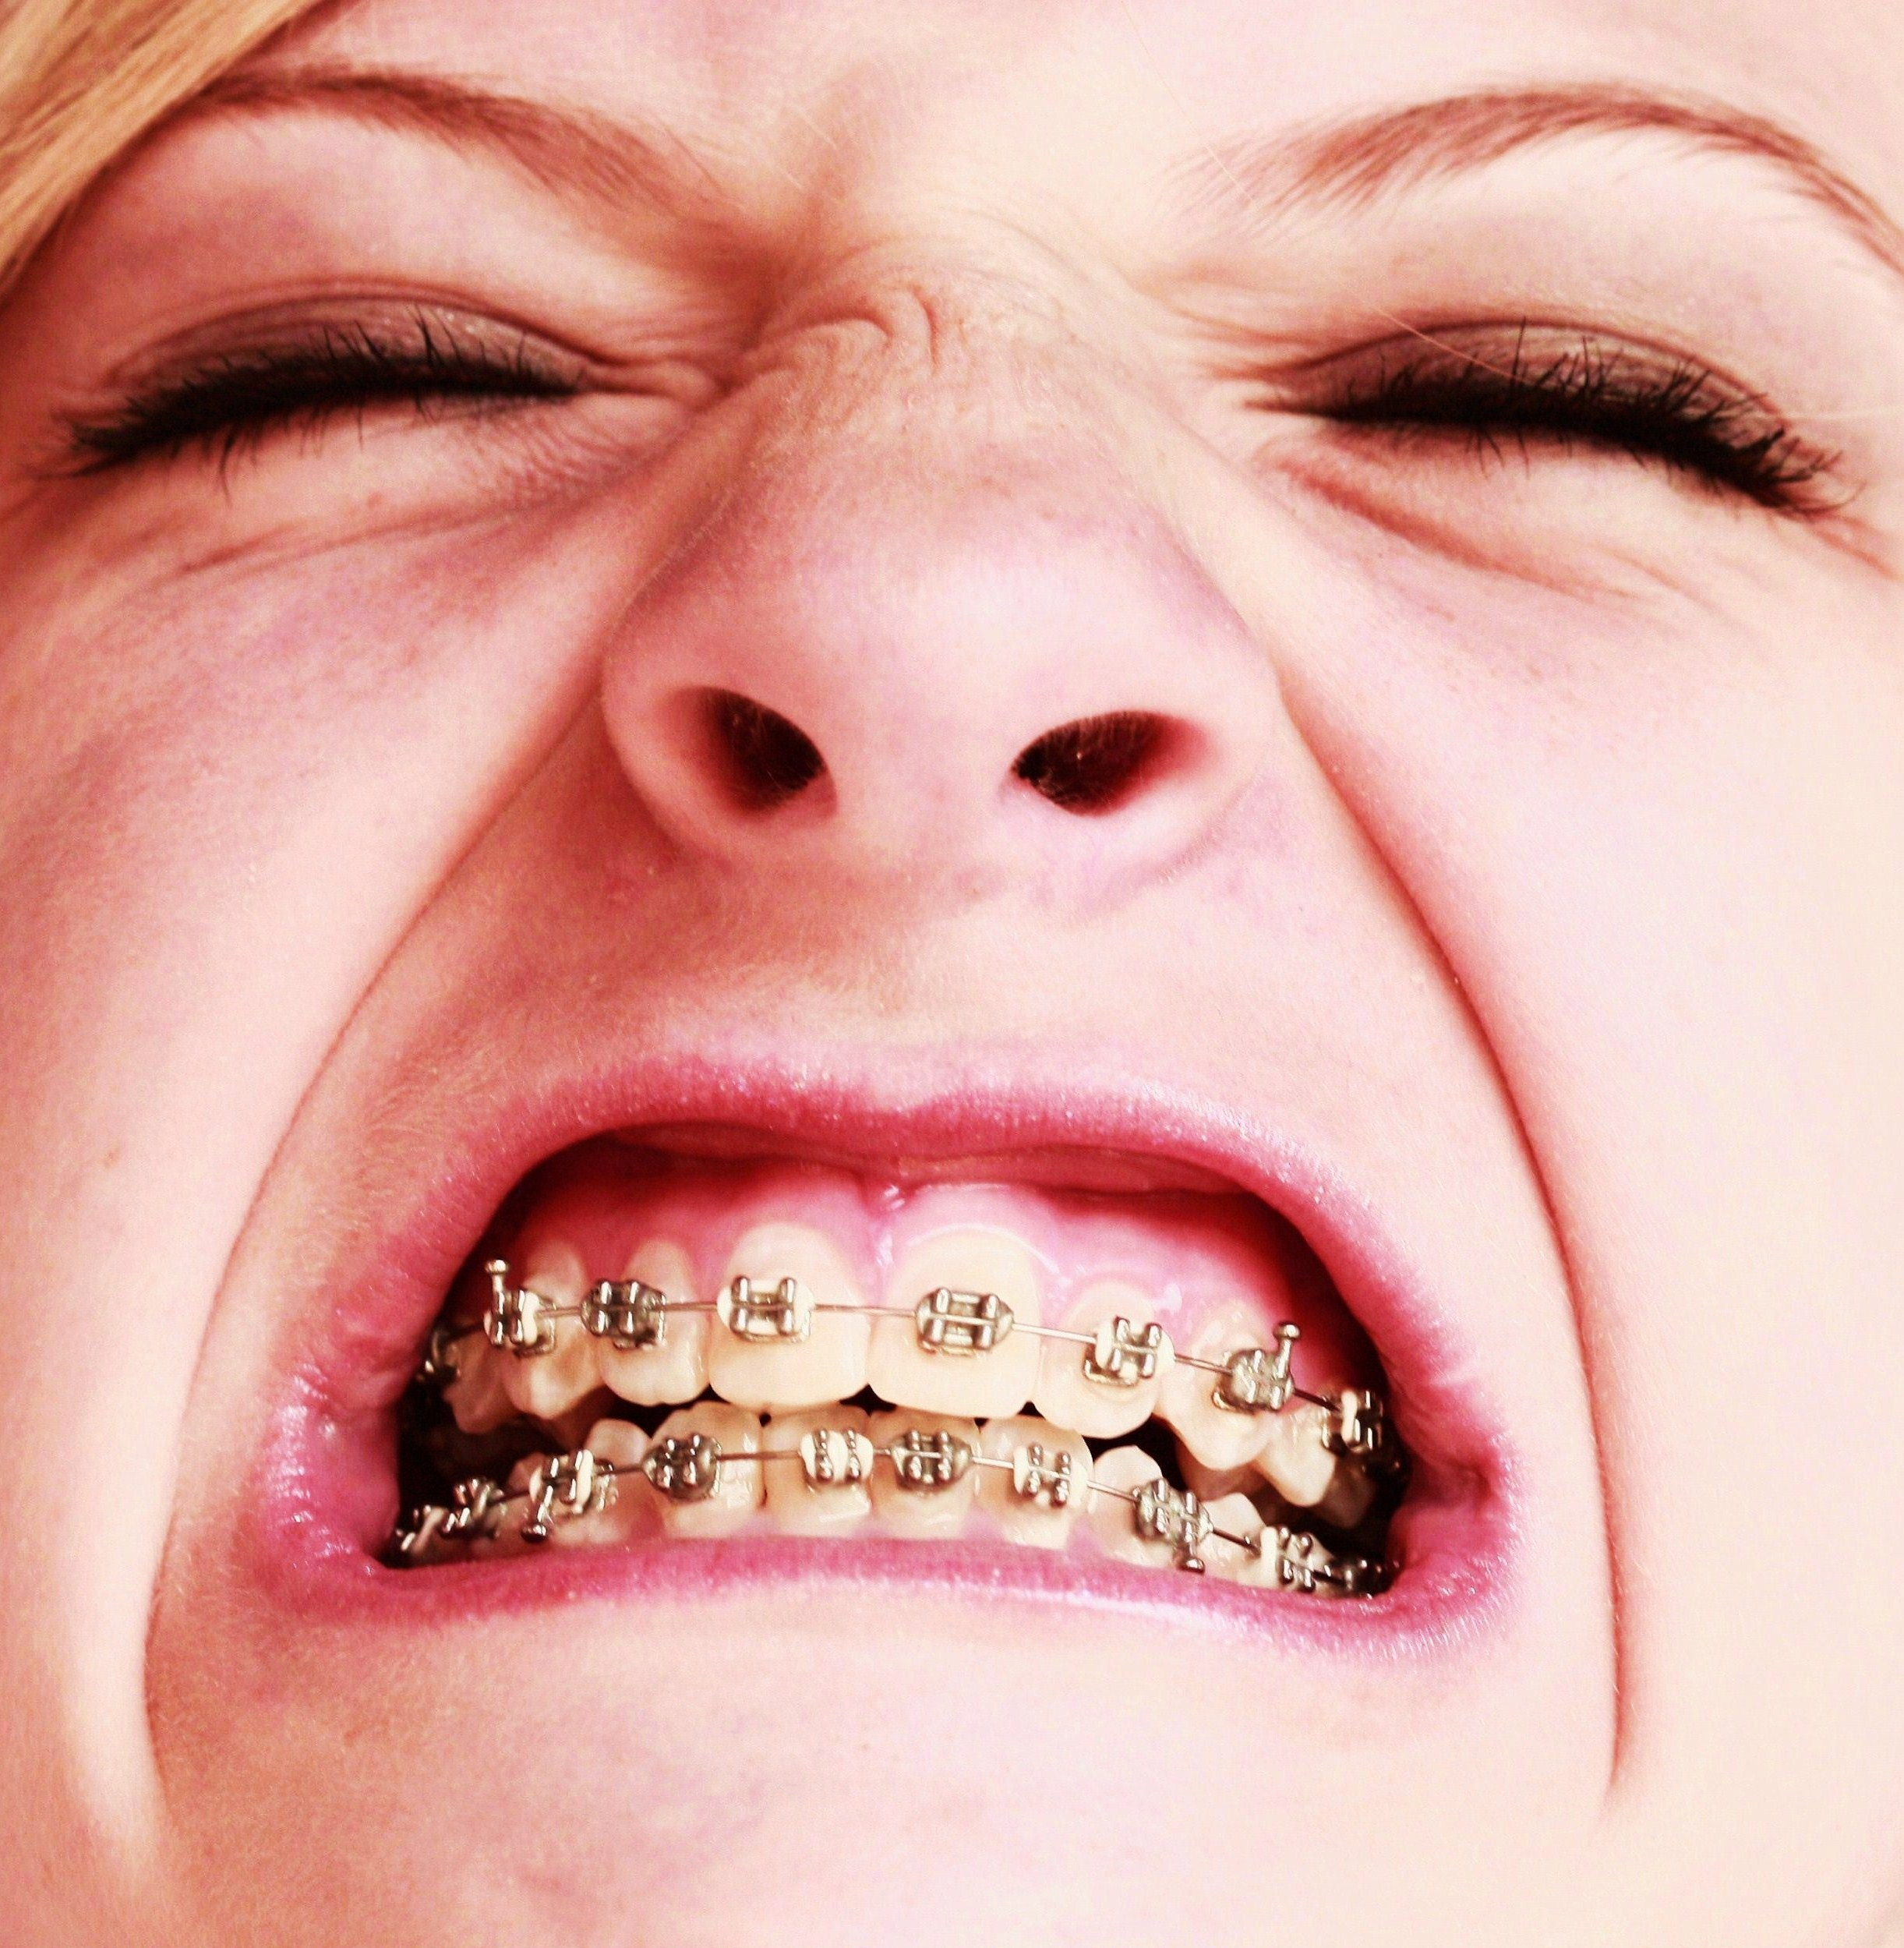 Description free awesome girl with braces close up